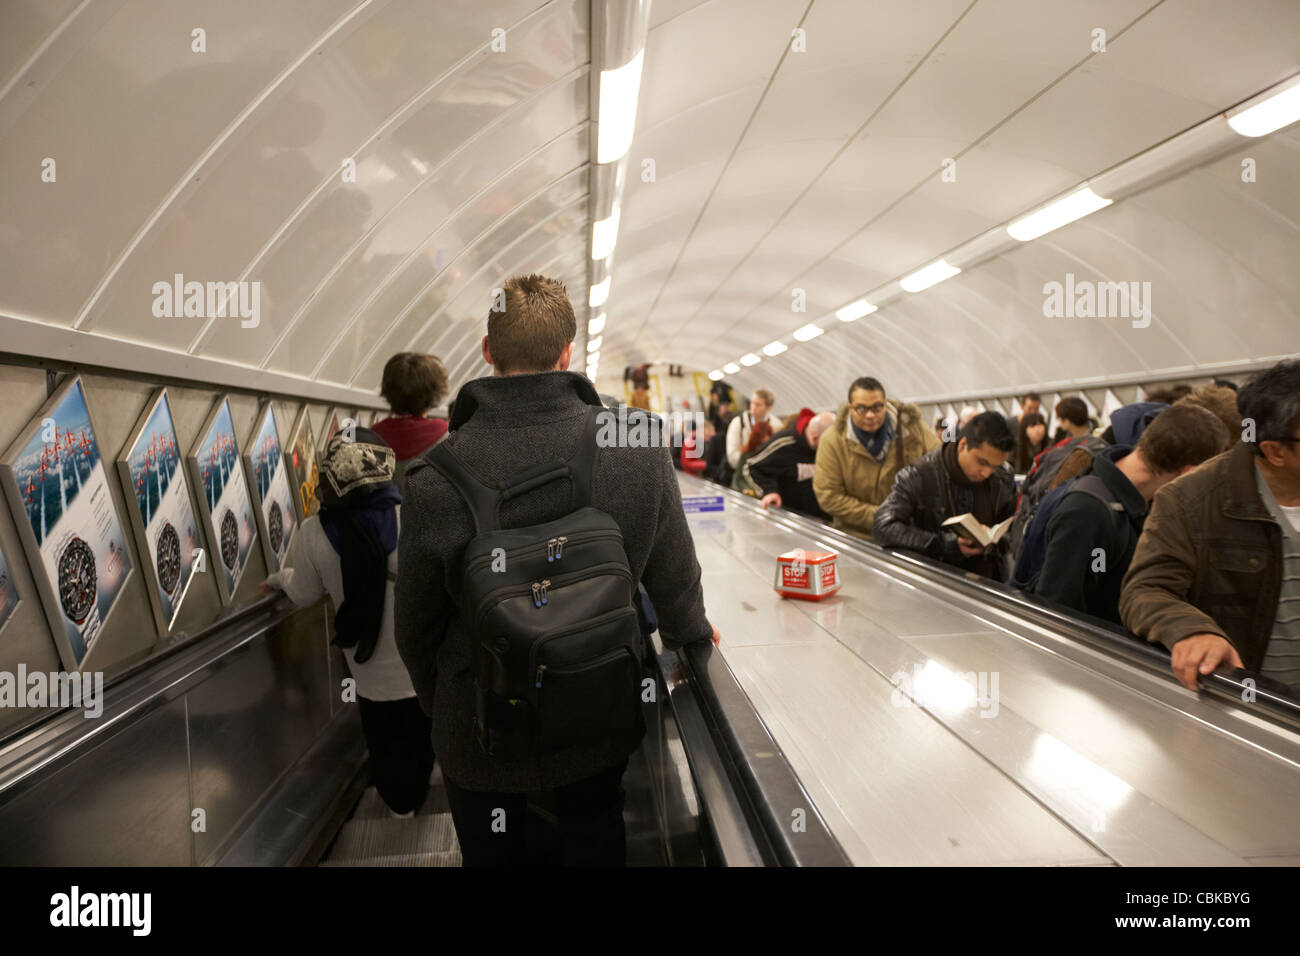 passengers and commuters on the escalator at a london underground tube station england united kingdom uk - Stock Image